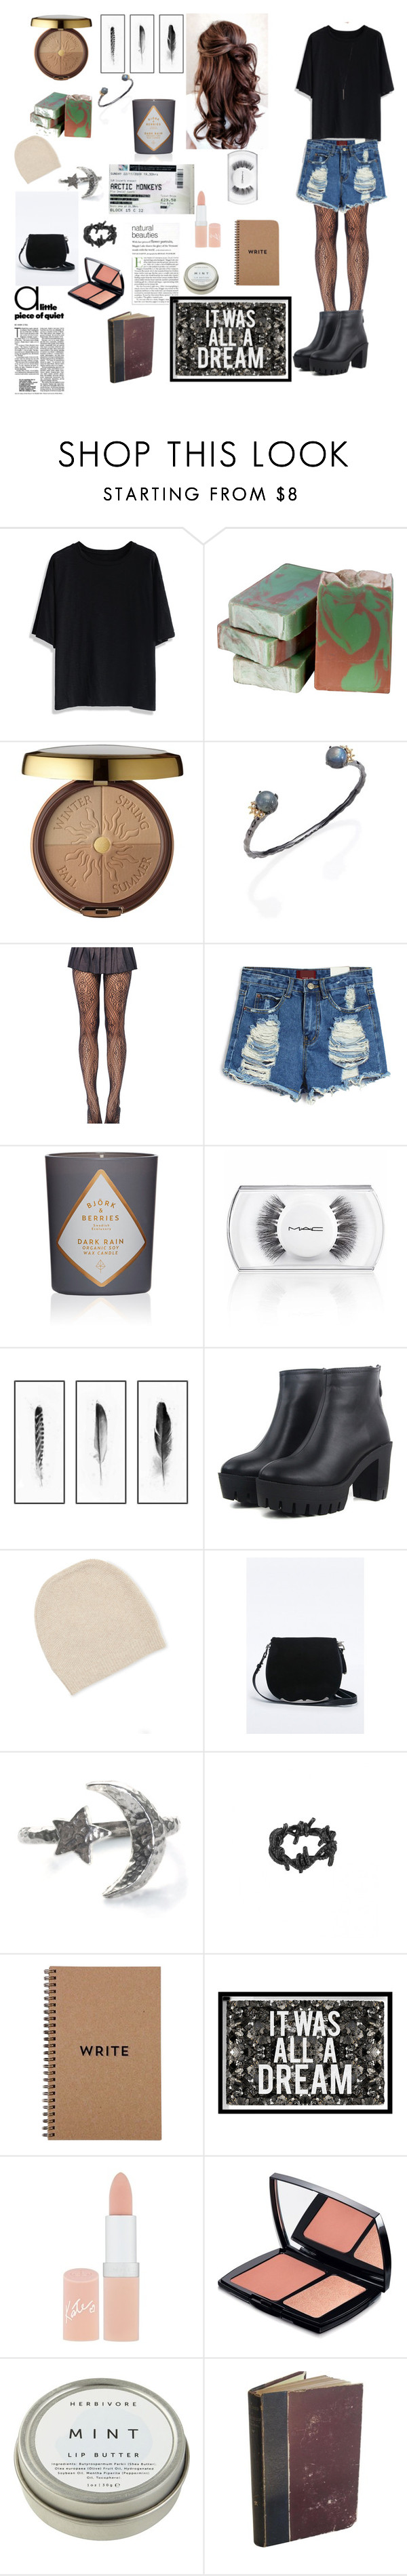 """""""Untitled #29"""" by notworthrepeating ❤ liked on Polyvore featuring Chicwish, Dot & Bo, Physicians Formula, Alexis Bittar, MAC Cosmetics, White + Warren, Barbed, Oliver Gal Artist Co., Rimmel and Lancôme"""